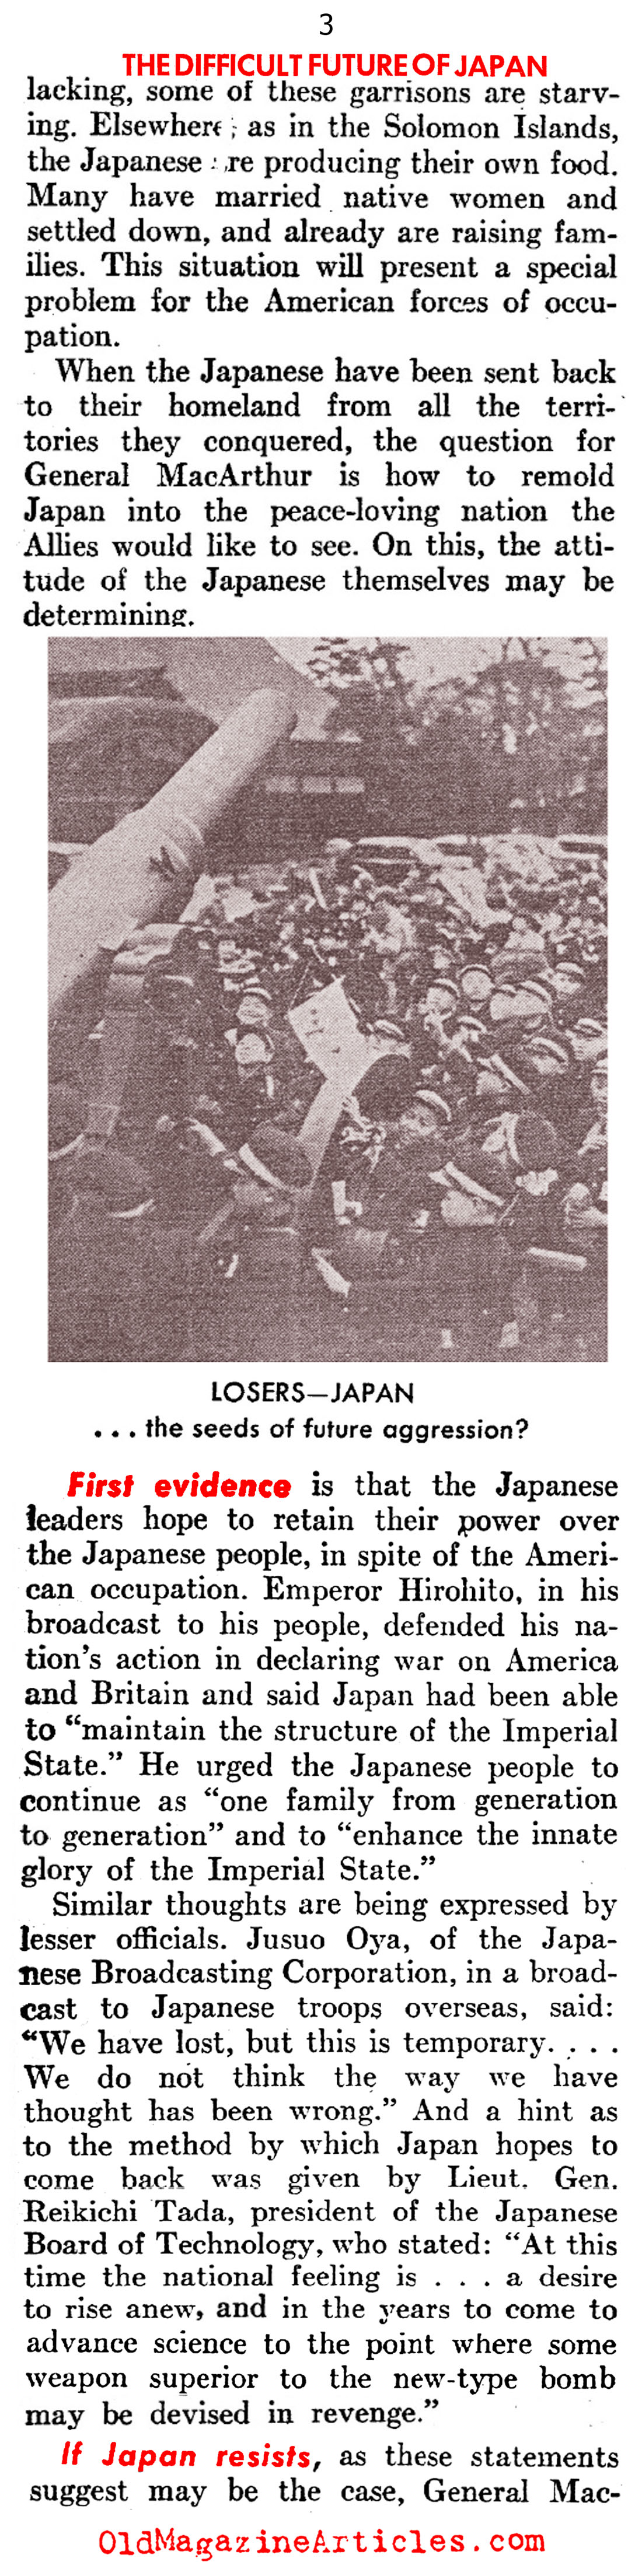 Japan Has Been Beaten. Now What? (United States News, 1945)